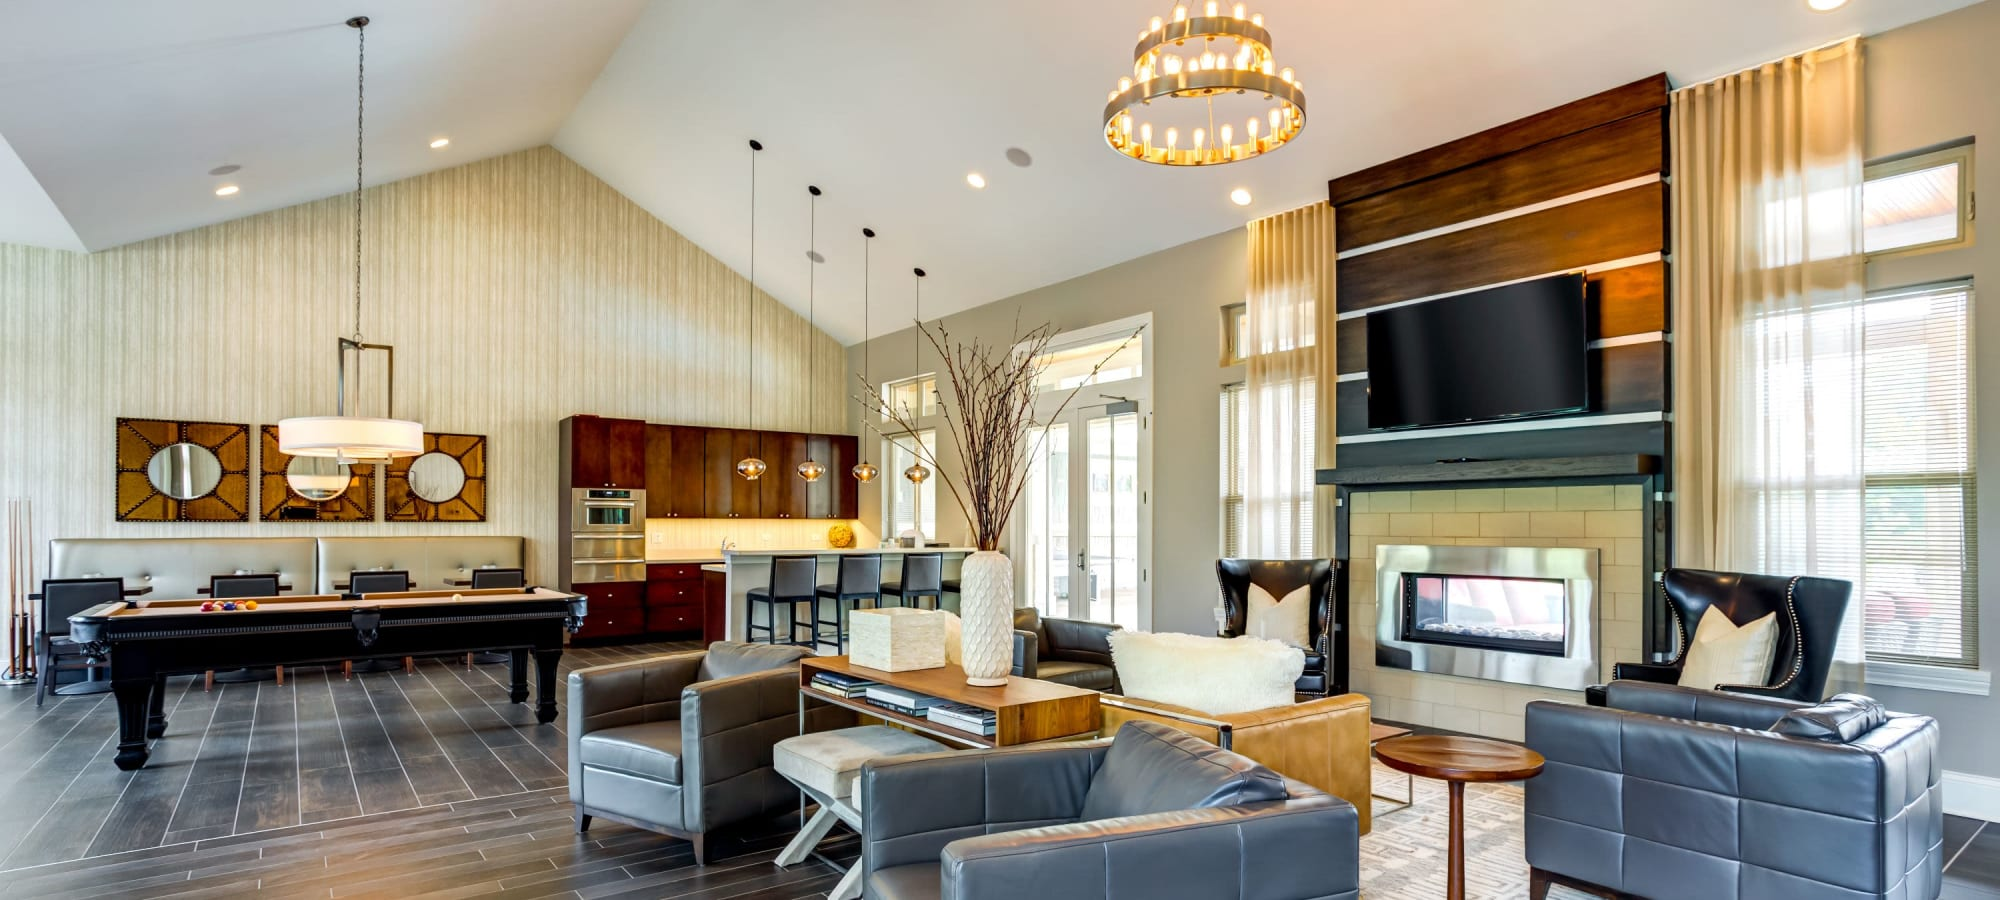 Apartments in Vernon Hills, Illinois at The Oaks Of Vernon Hills